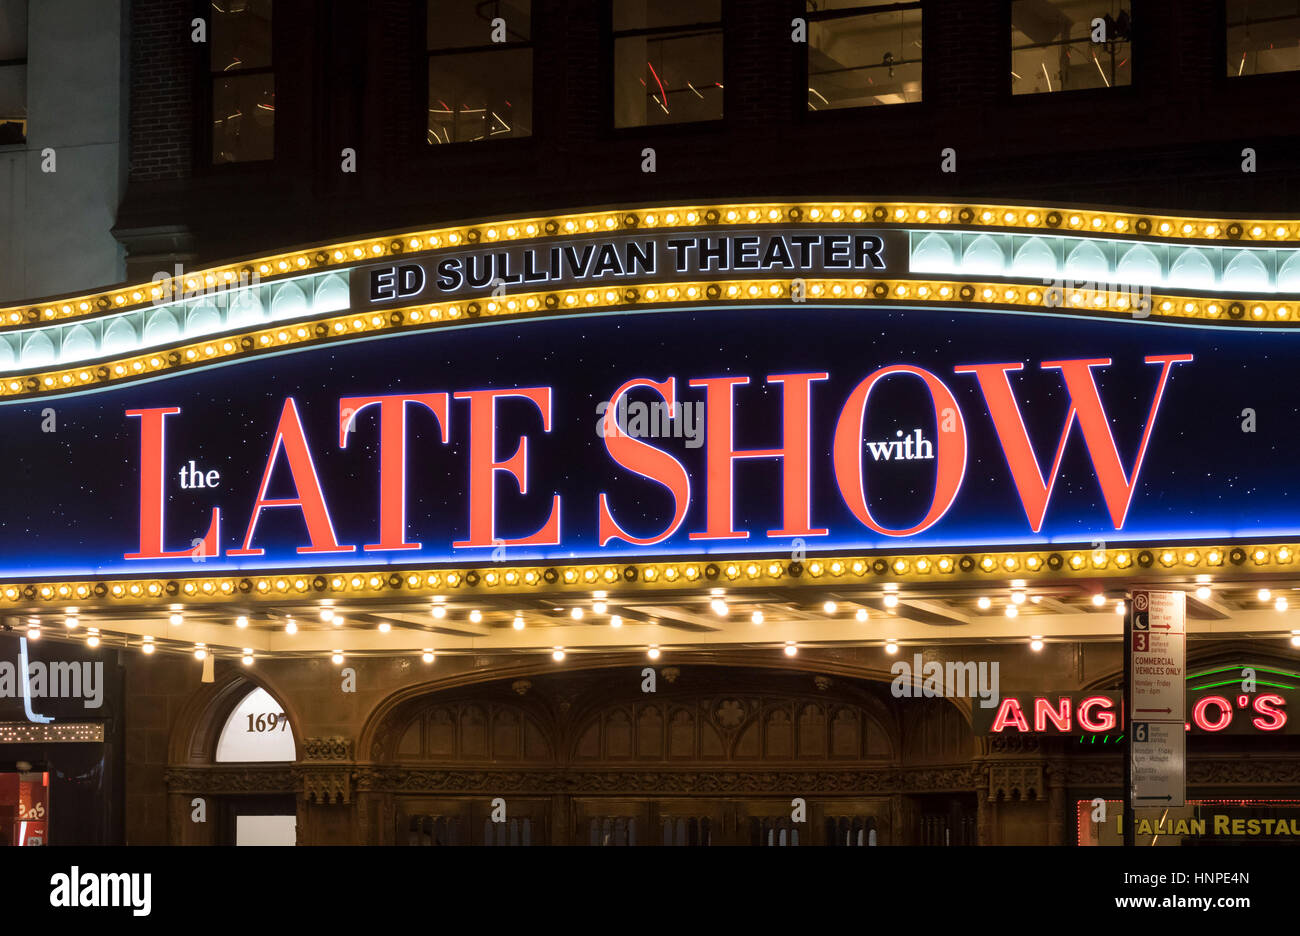 The Late Show with Stephen Colbert at the Ed Sullivan Theatre in New York City - Stock Image